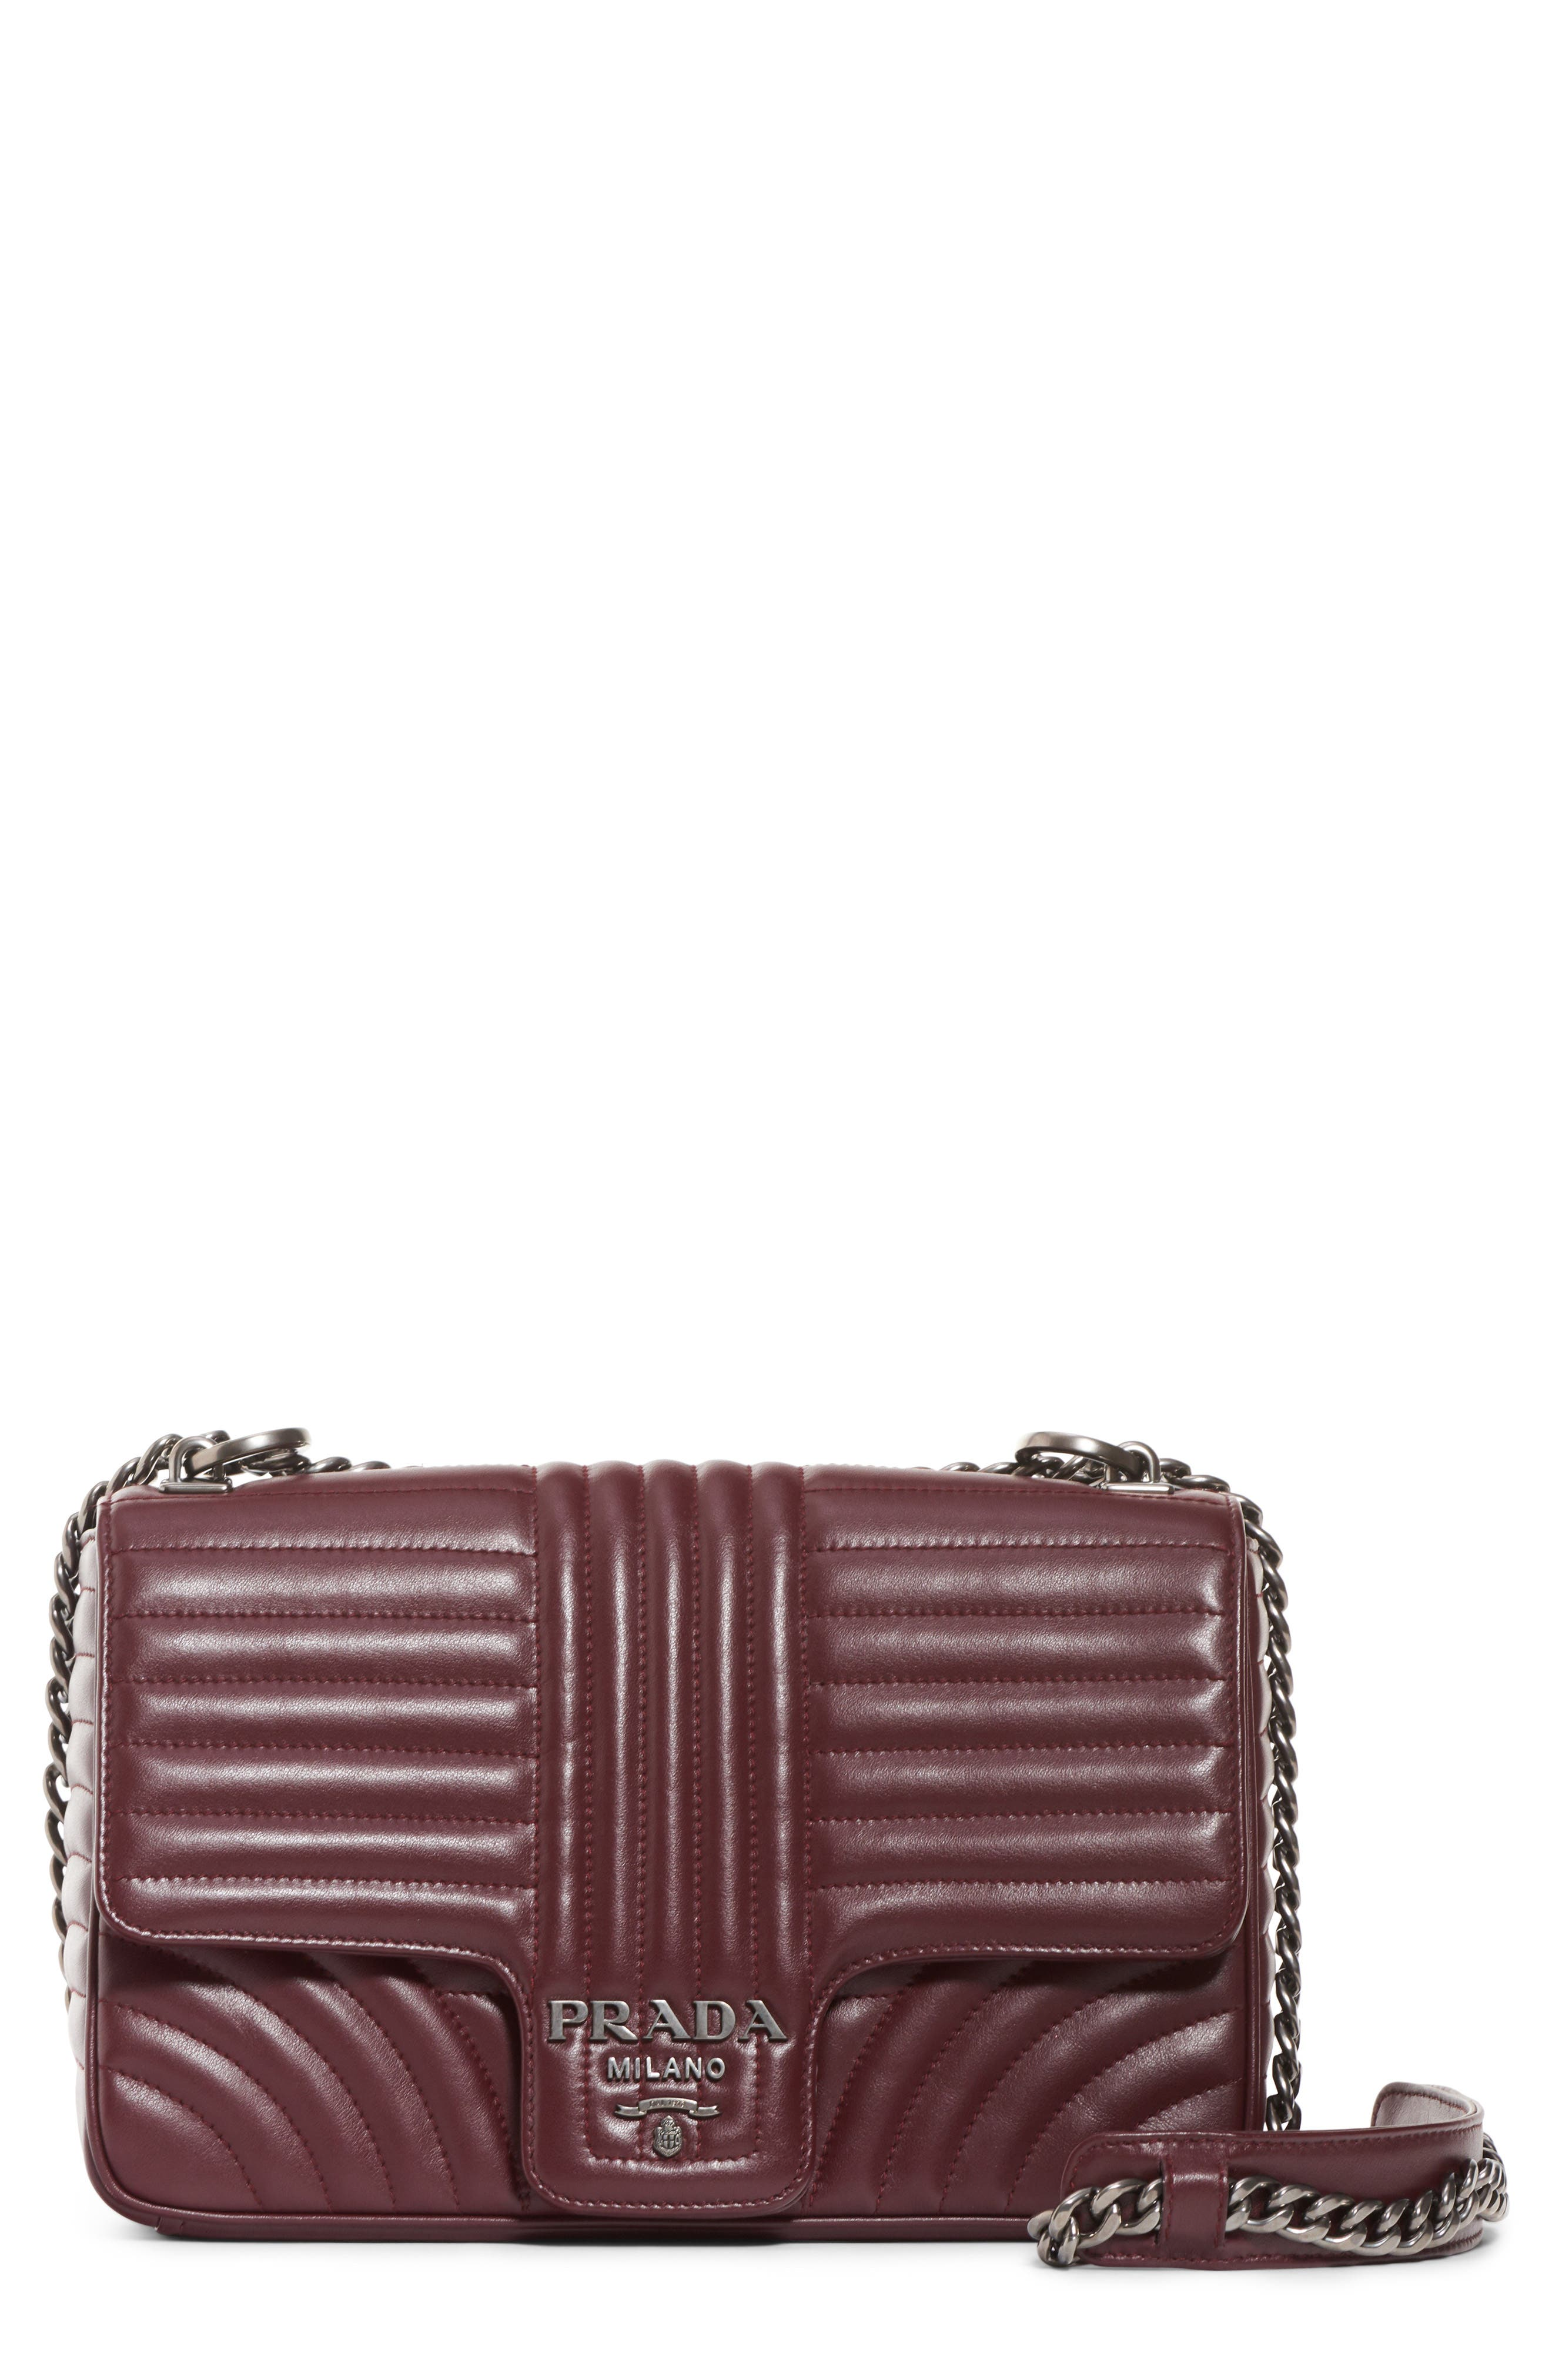 PRADA,                             Large Quilted Leather Shoulder Bag,                             Main thumbnail 1, color,                             GRANATO